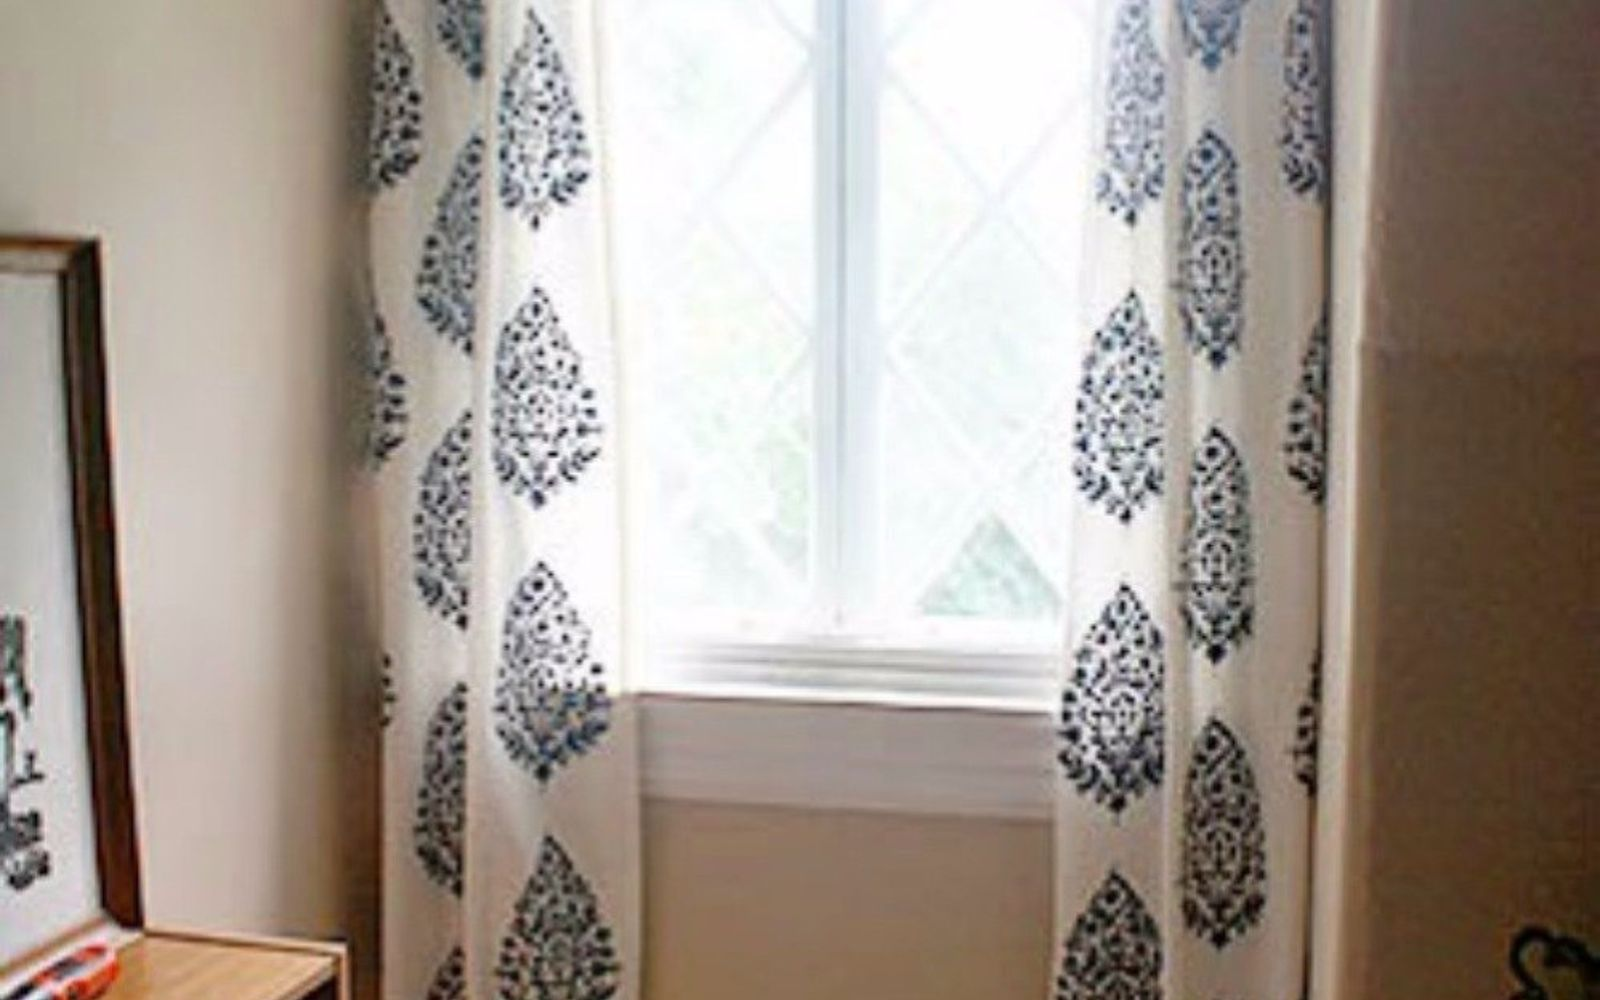 s decorate your living room for under 10 with these 15 ideas, Stencil a drop cloth for new curtains